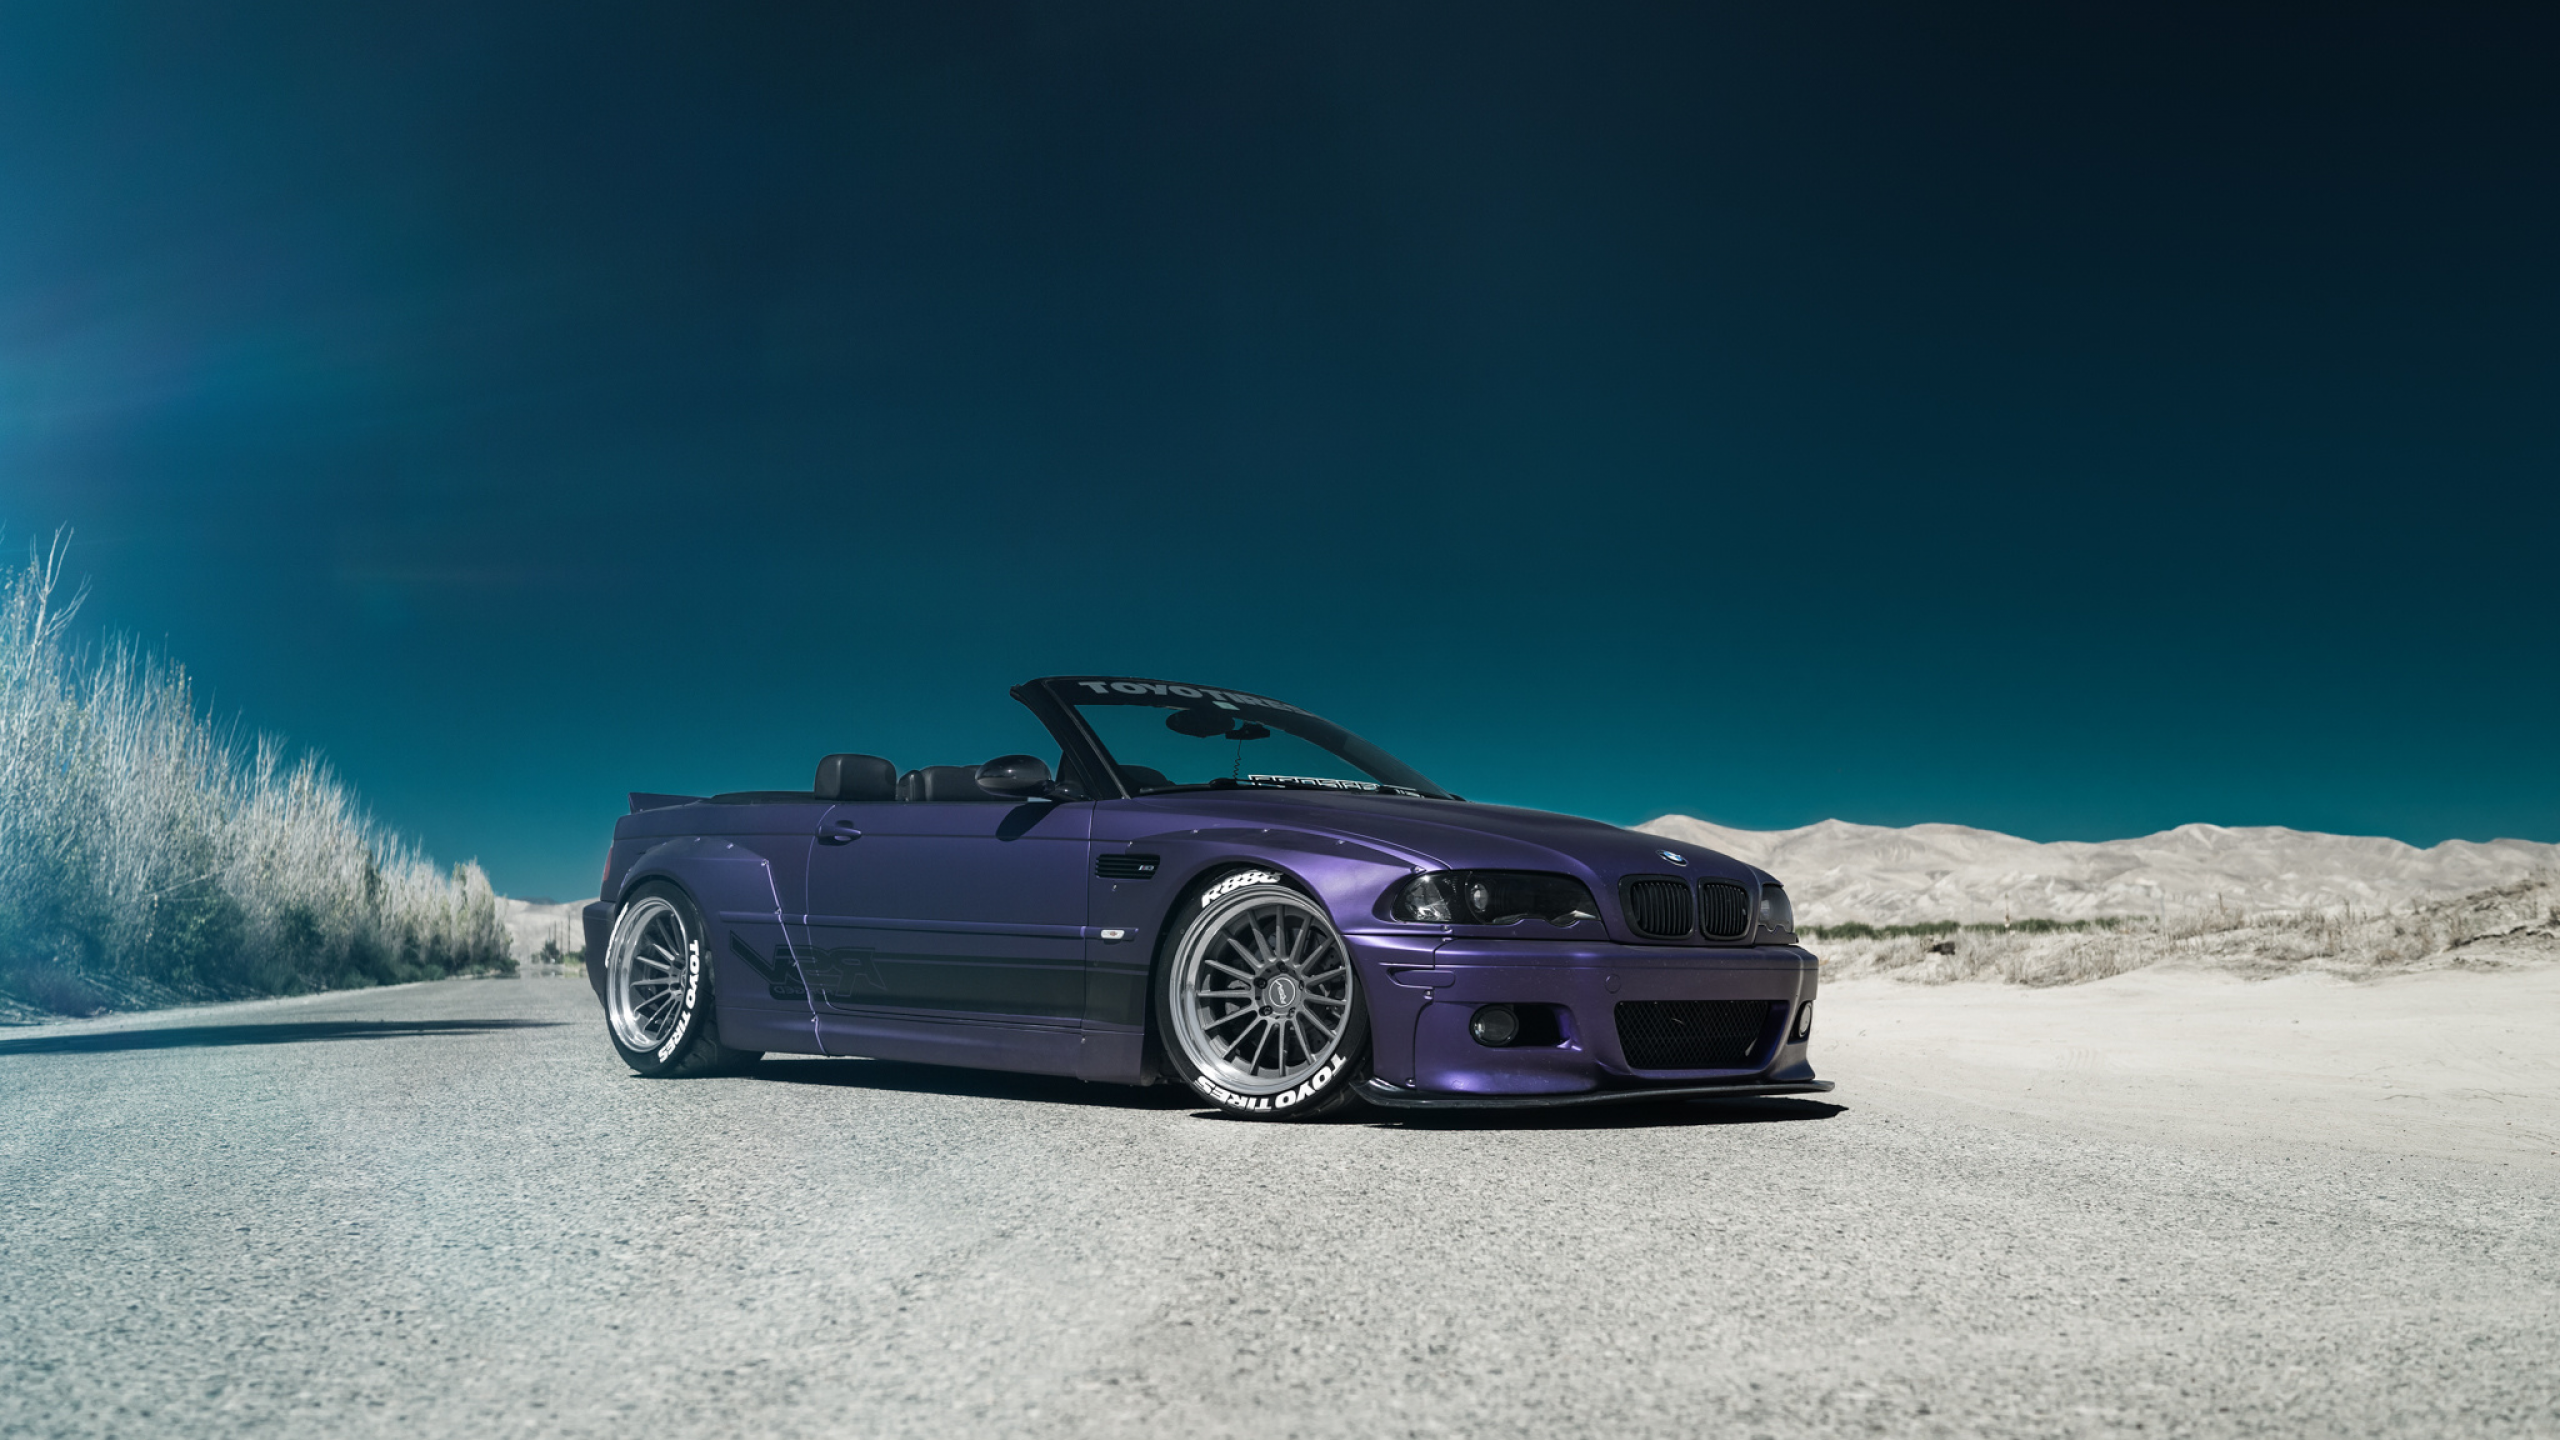 download 2560x1440 bmw e46 m3 rsv forged tuning cabrio wheel bmw m3 bmw wallpapers. Black Bedroom Furniture Sets. Home Design Ideas